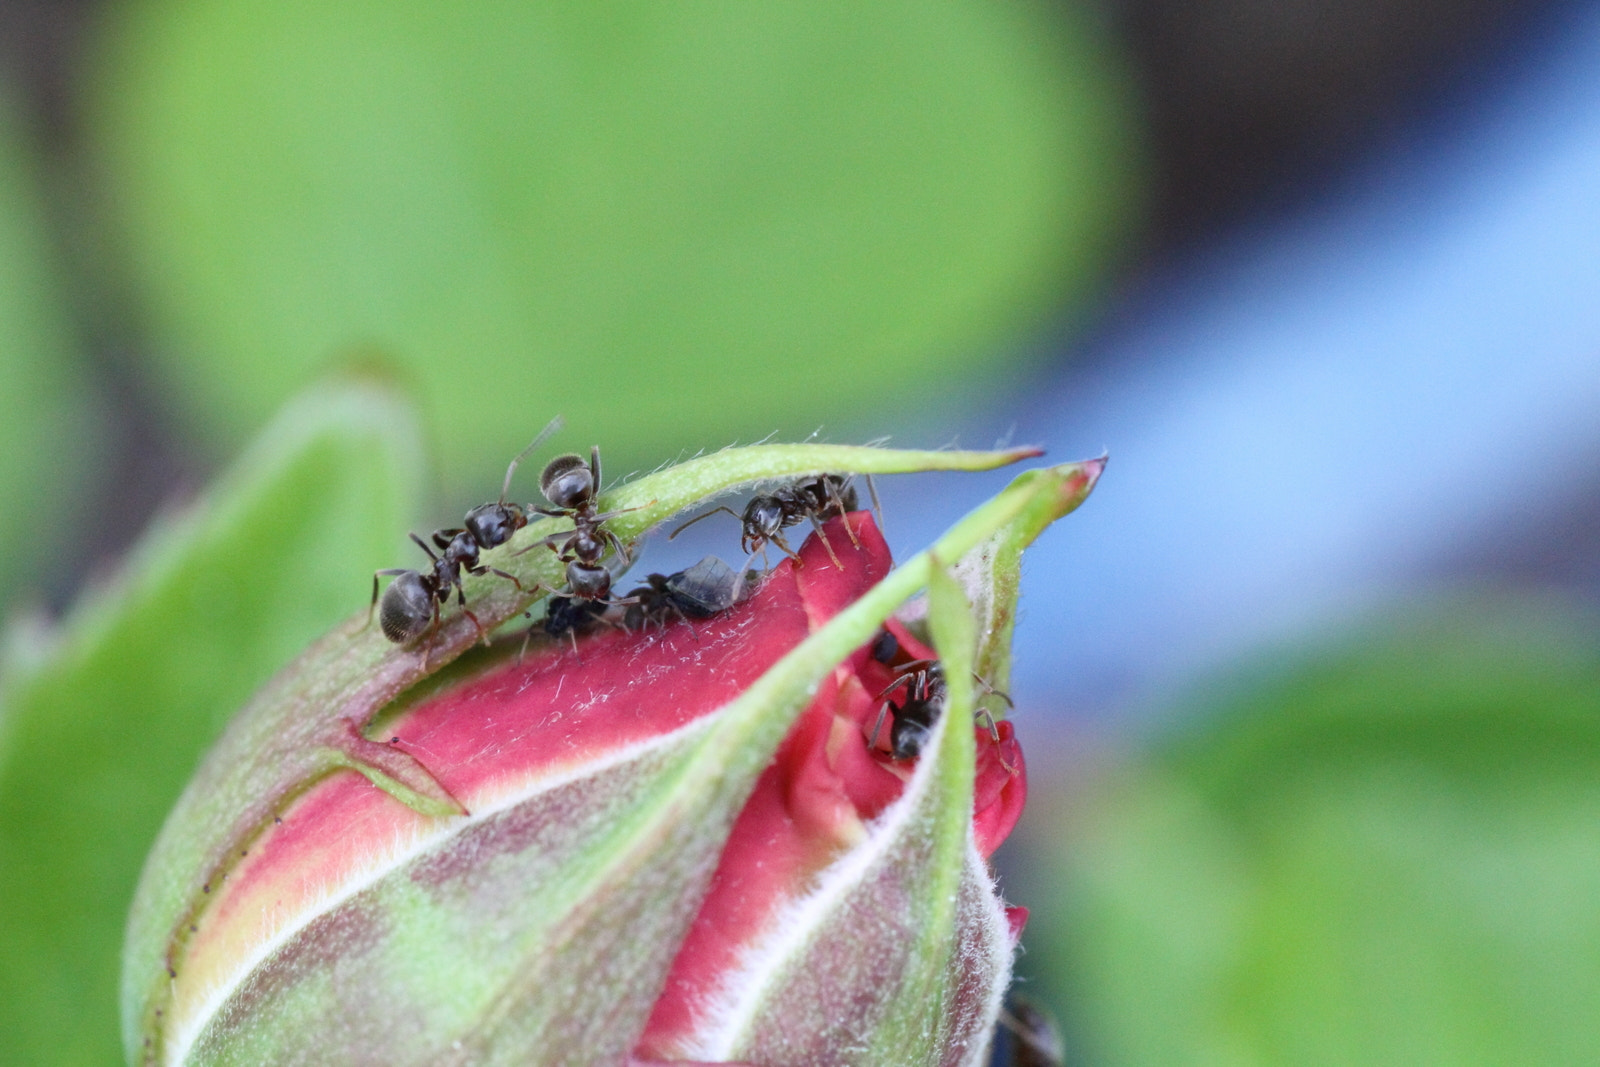 Photograph Ants at Work by Philipp K on 500px